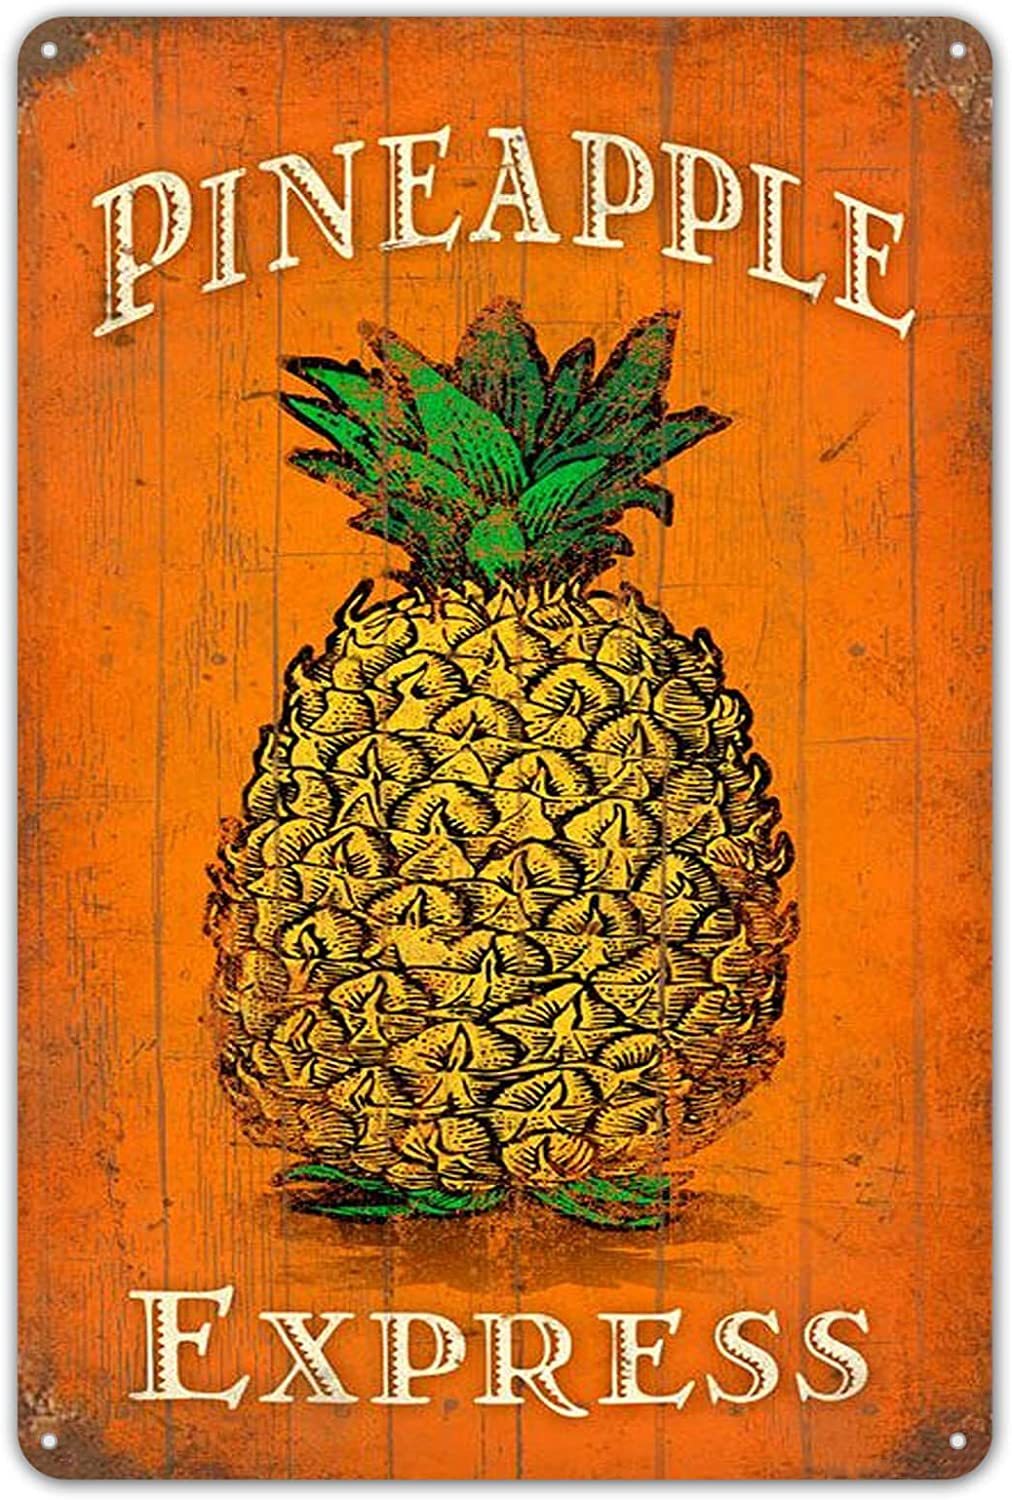 Sarcarse Tin Signs Vintage Pineapple Express Metal Sign Poster Plate for Cafe Room Pub Restaurants Home Shop Wall Decor